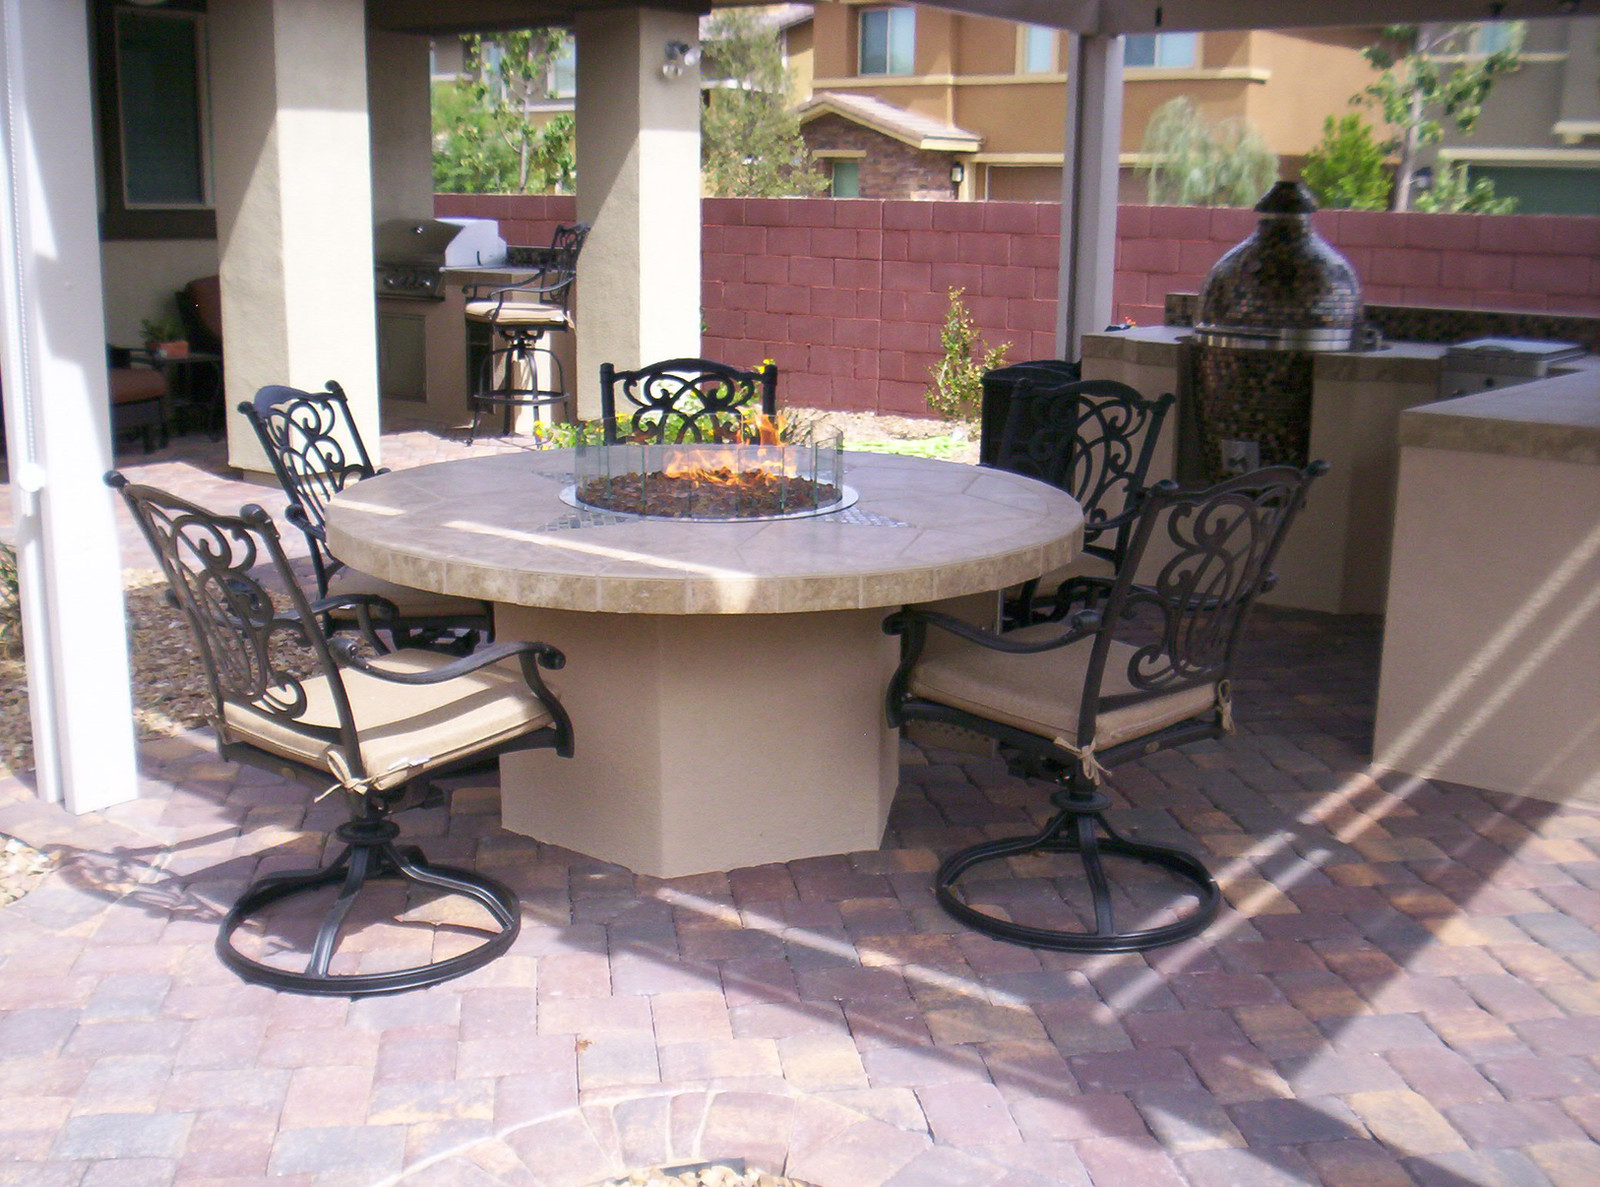 Outdoor kitchen fire feature fire pit tile pavers kamado grill outdoor furniture meadowcraft